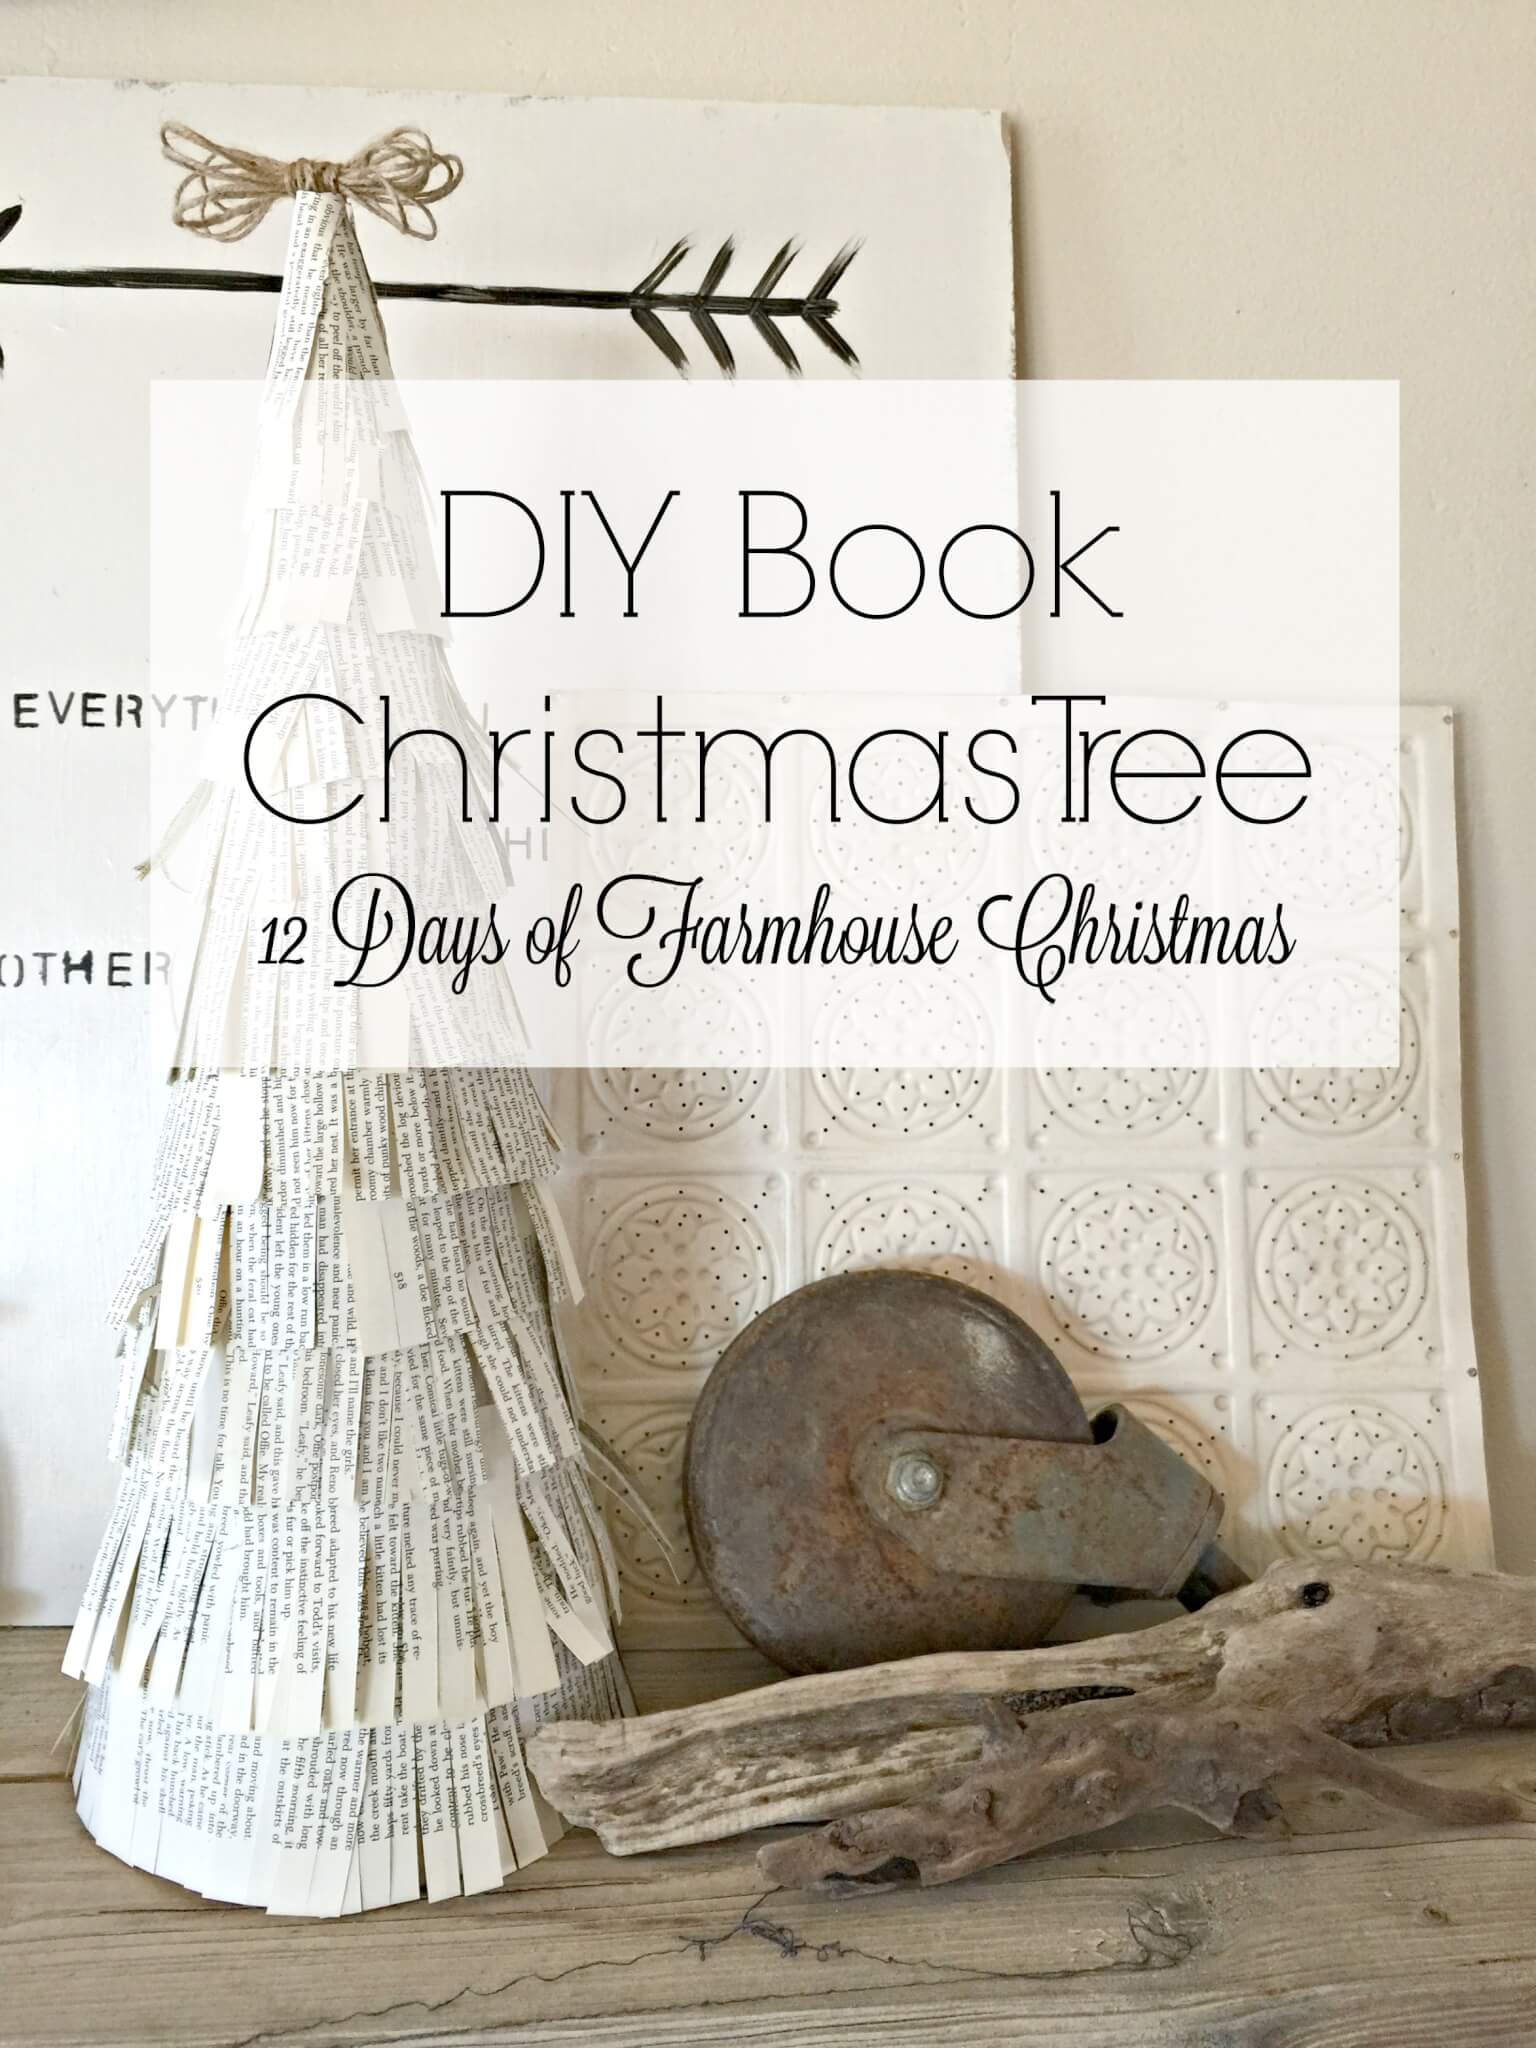 DIY Book Christmas Tree